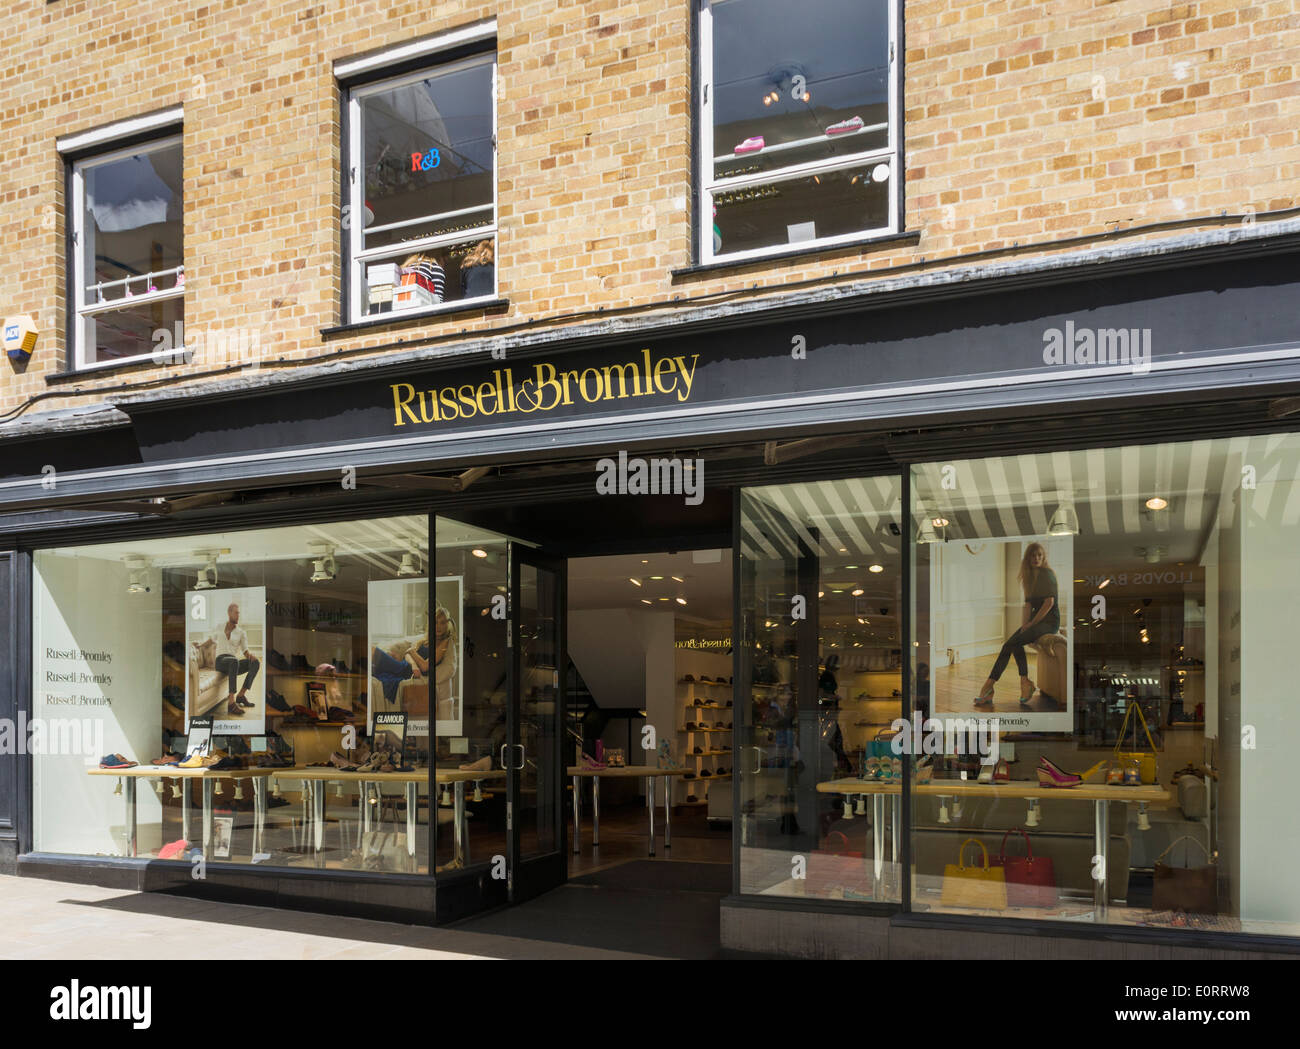 Russell and Bromley shoe store, England, UK - Stock Image